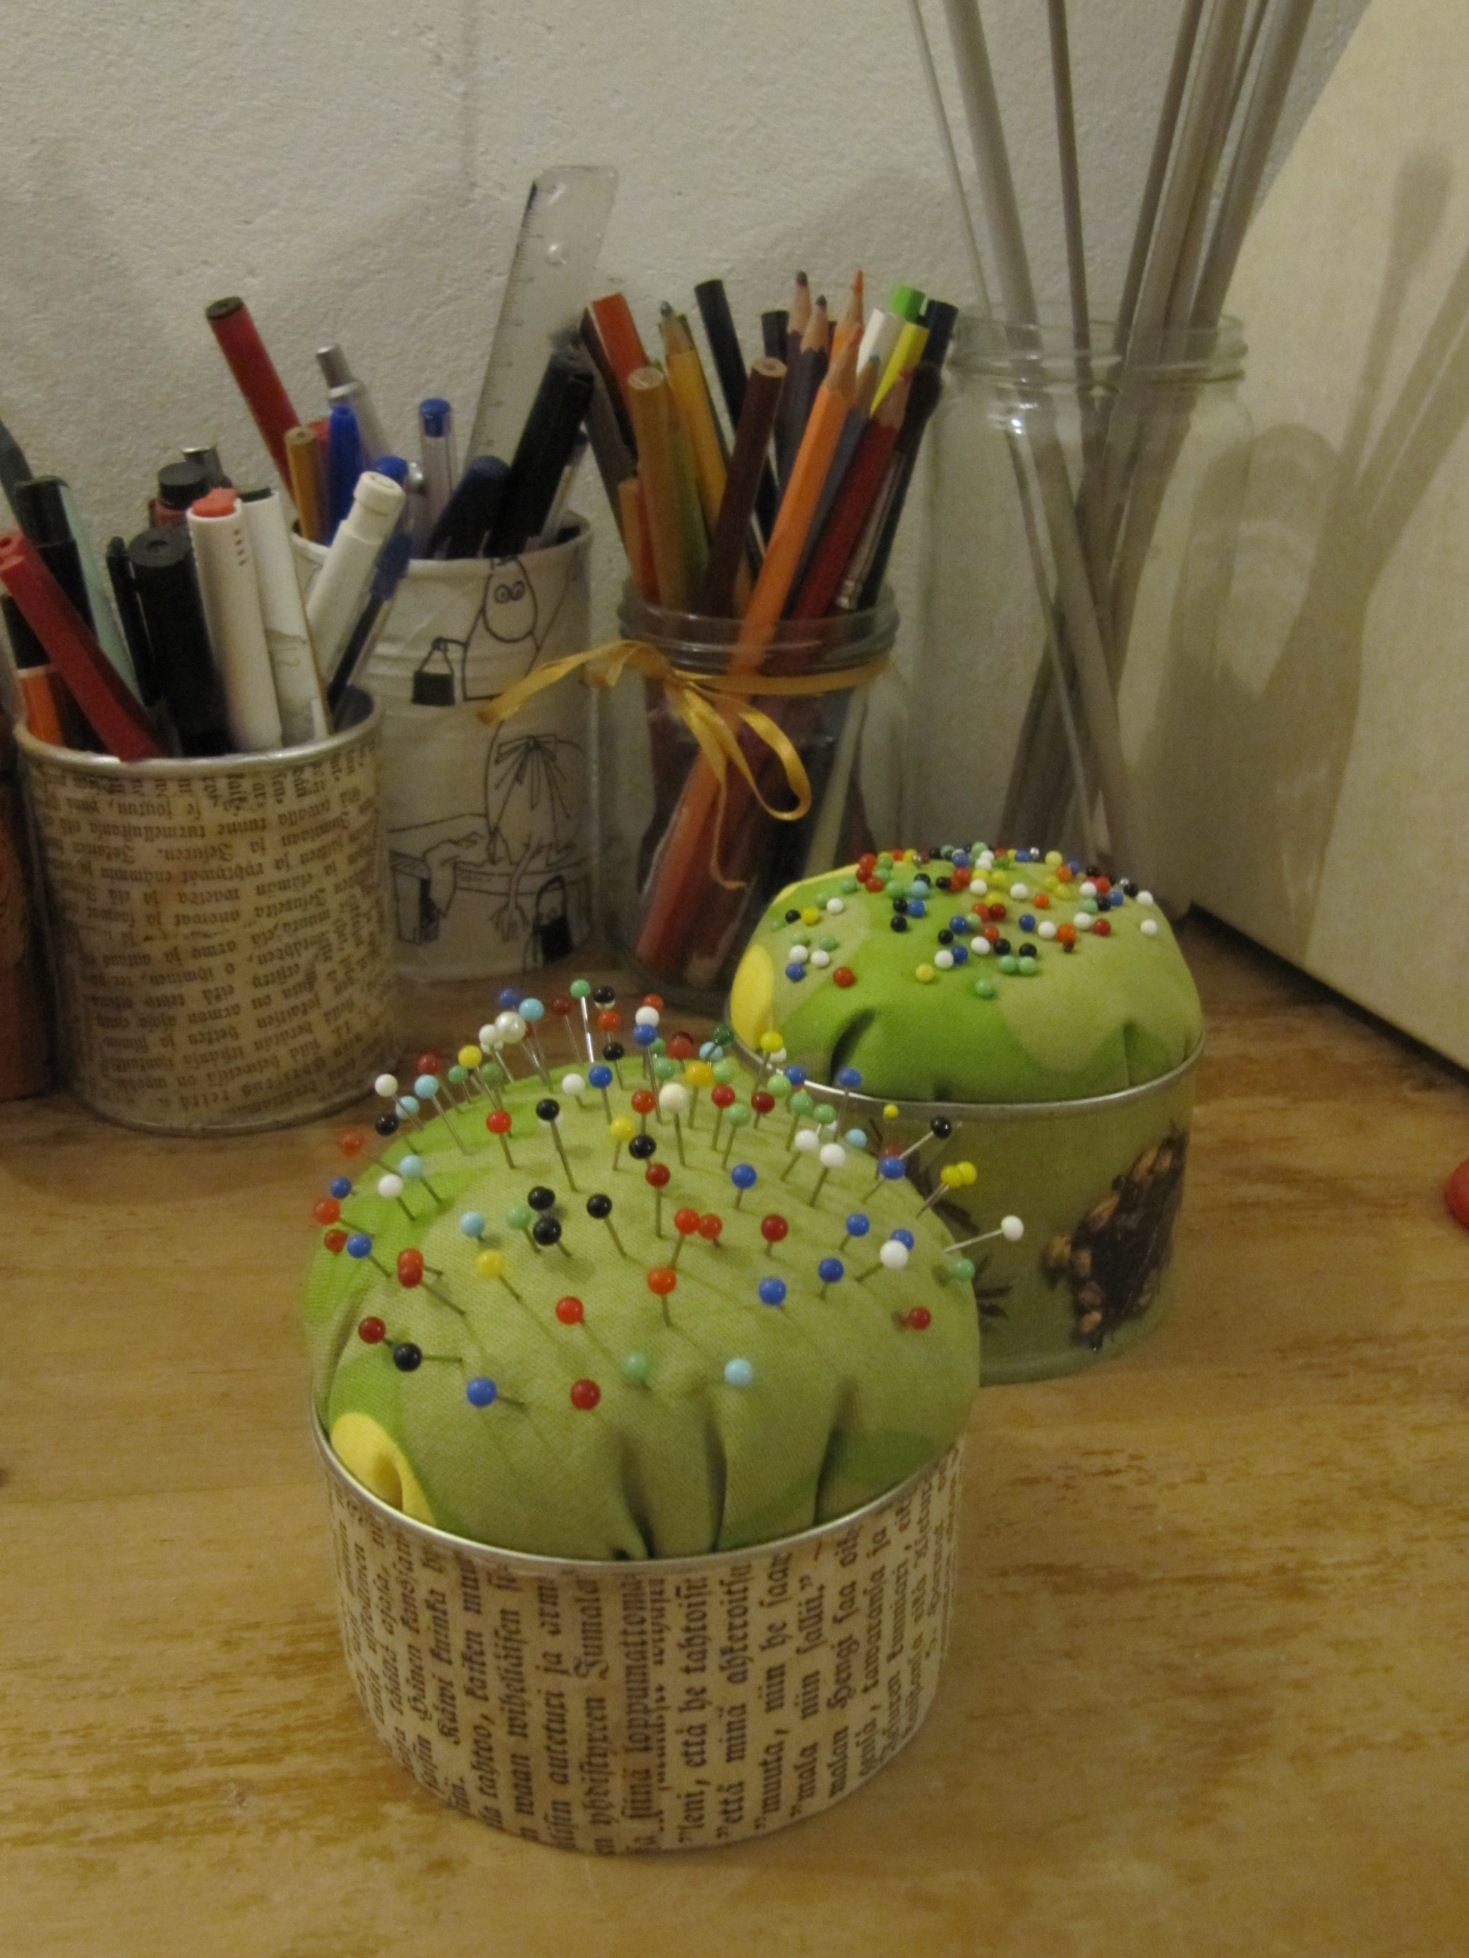 Pincushions and penholders from recycled material